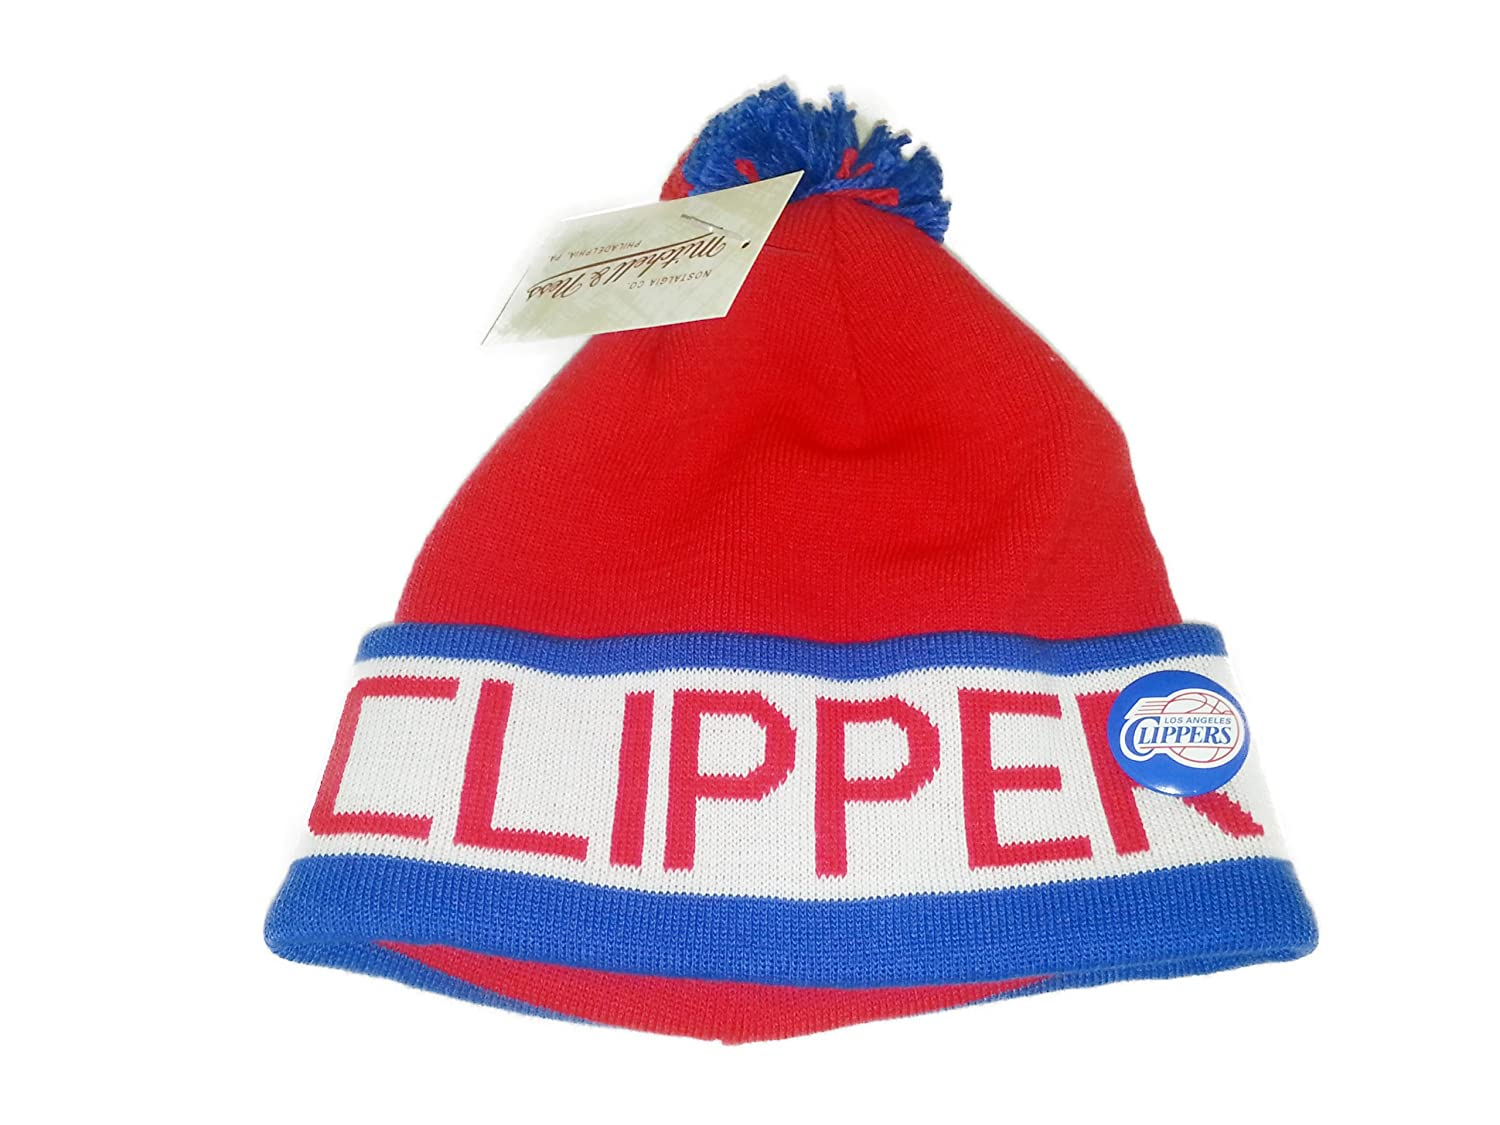 Mitchell & Ness NBA Clippers Vintageブロックポンポン付きニット帽   B00GAGYVCQ